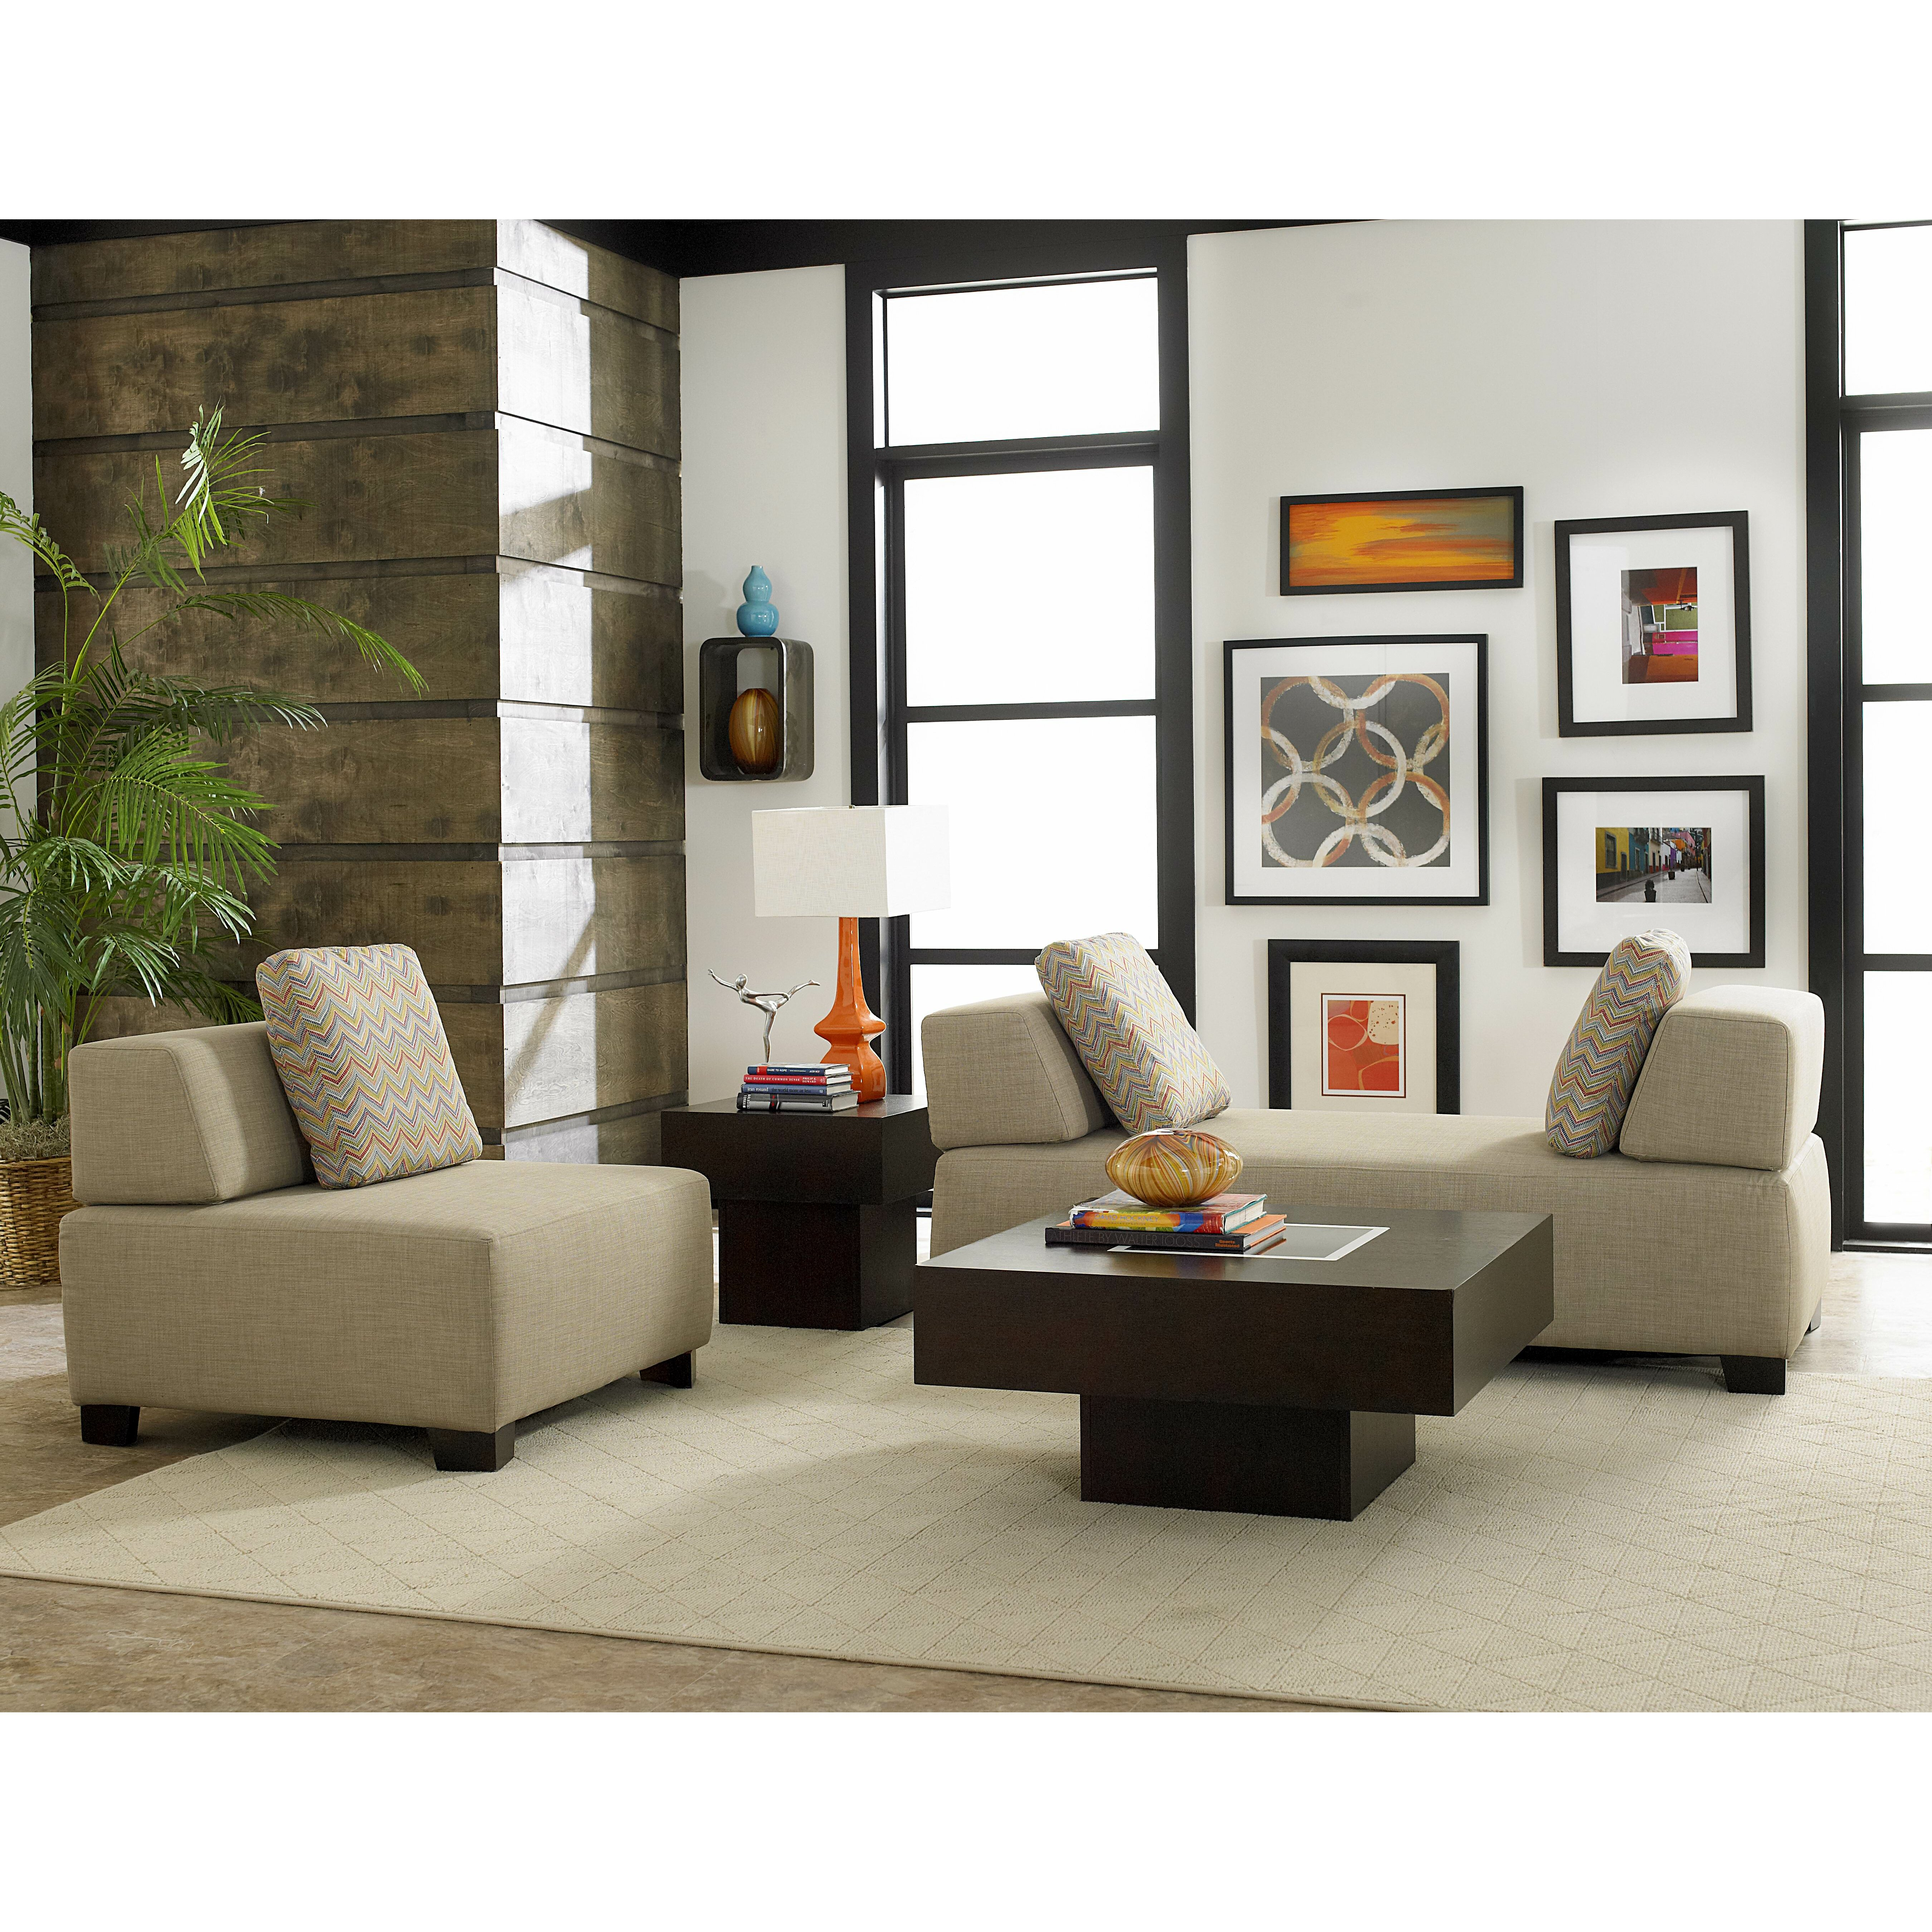 Woodhaven Living Room Furniture Woodhaven Hill Darby Sofa Wayfair